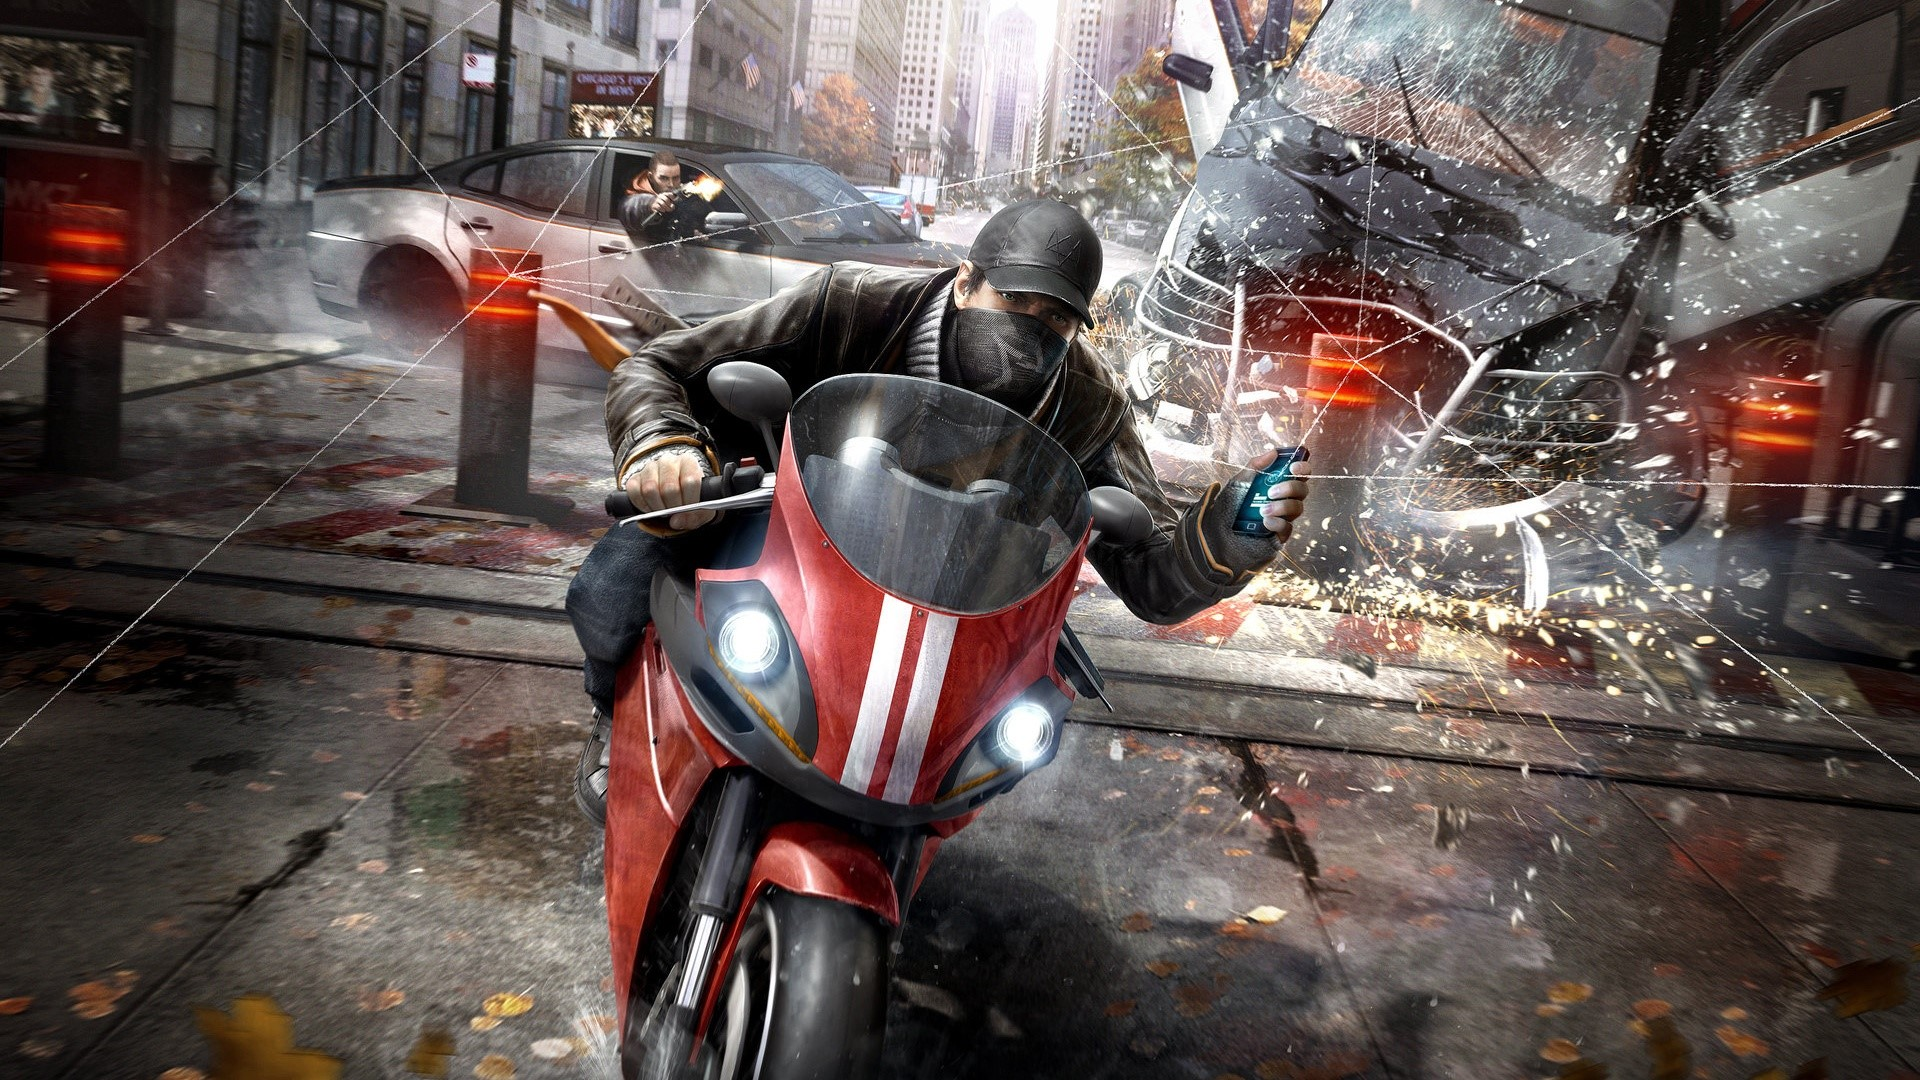 Fondos de pantalla Watch dogs